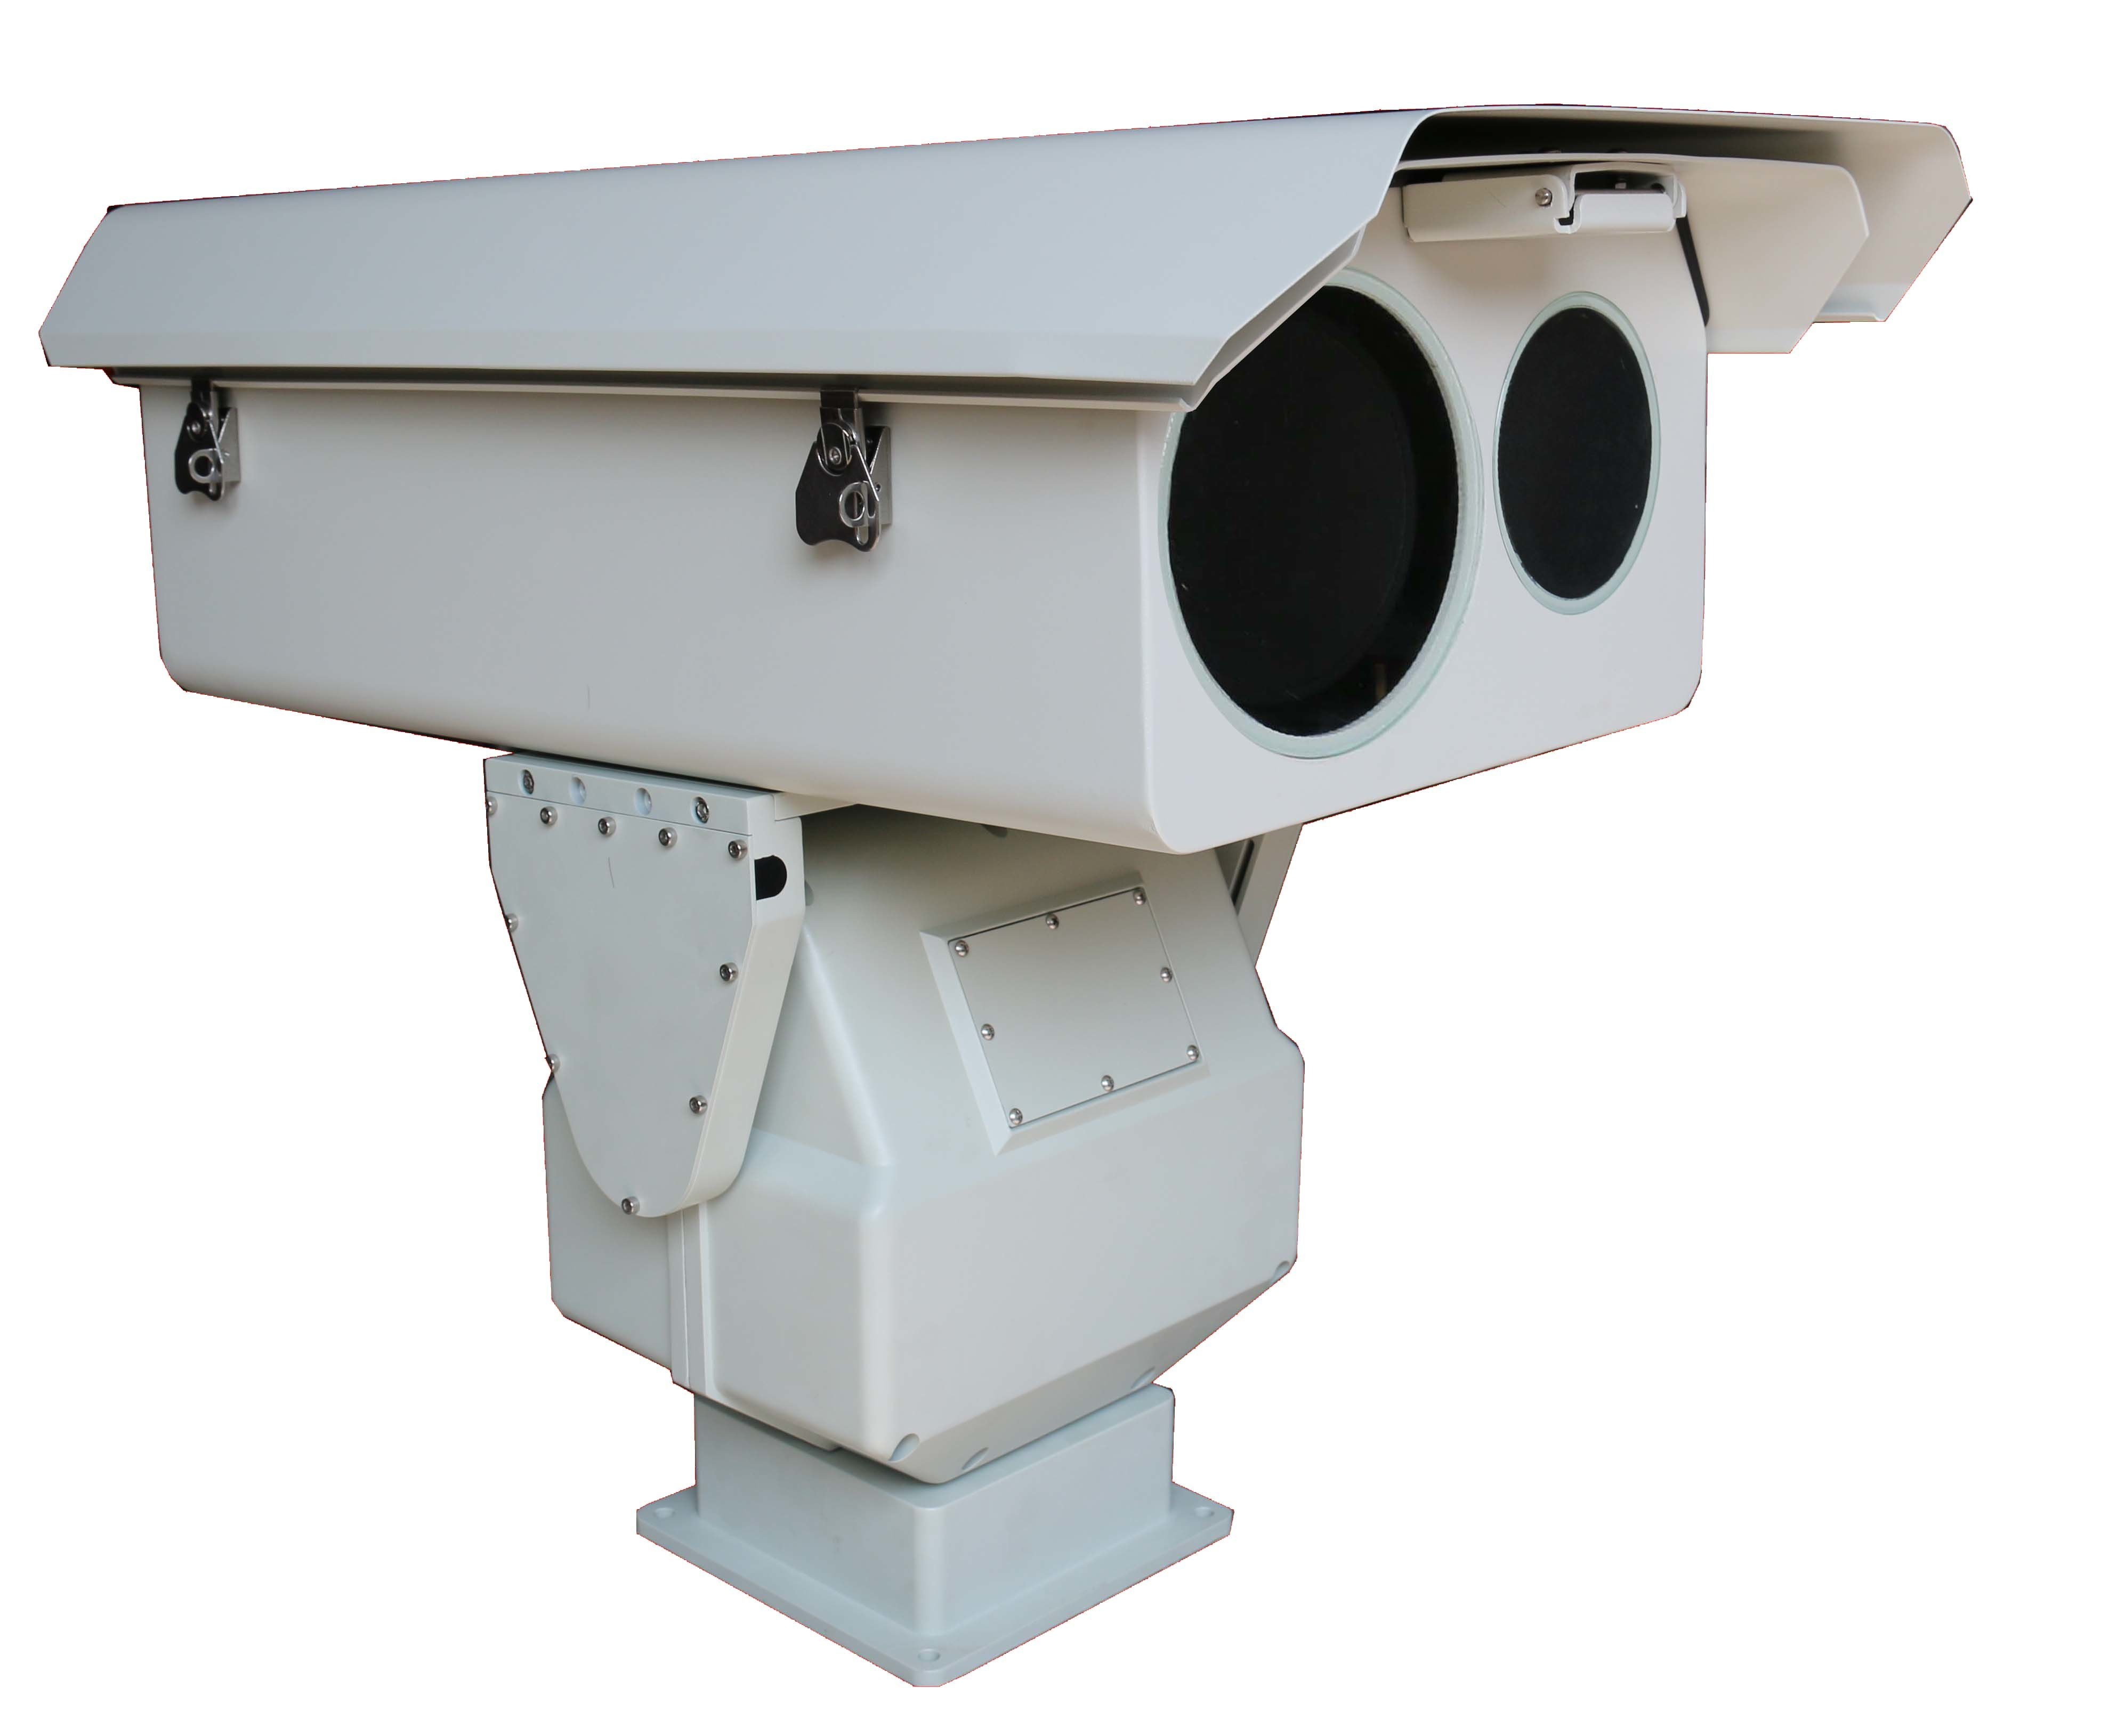 HD Thermal Image Laser PTZ HD4k 3840 X 2160@30fps Camera, with Onvif Protocol All Weather Workable